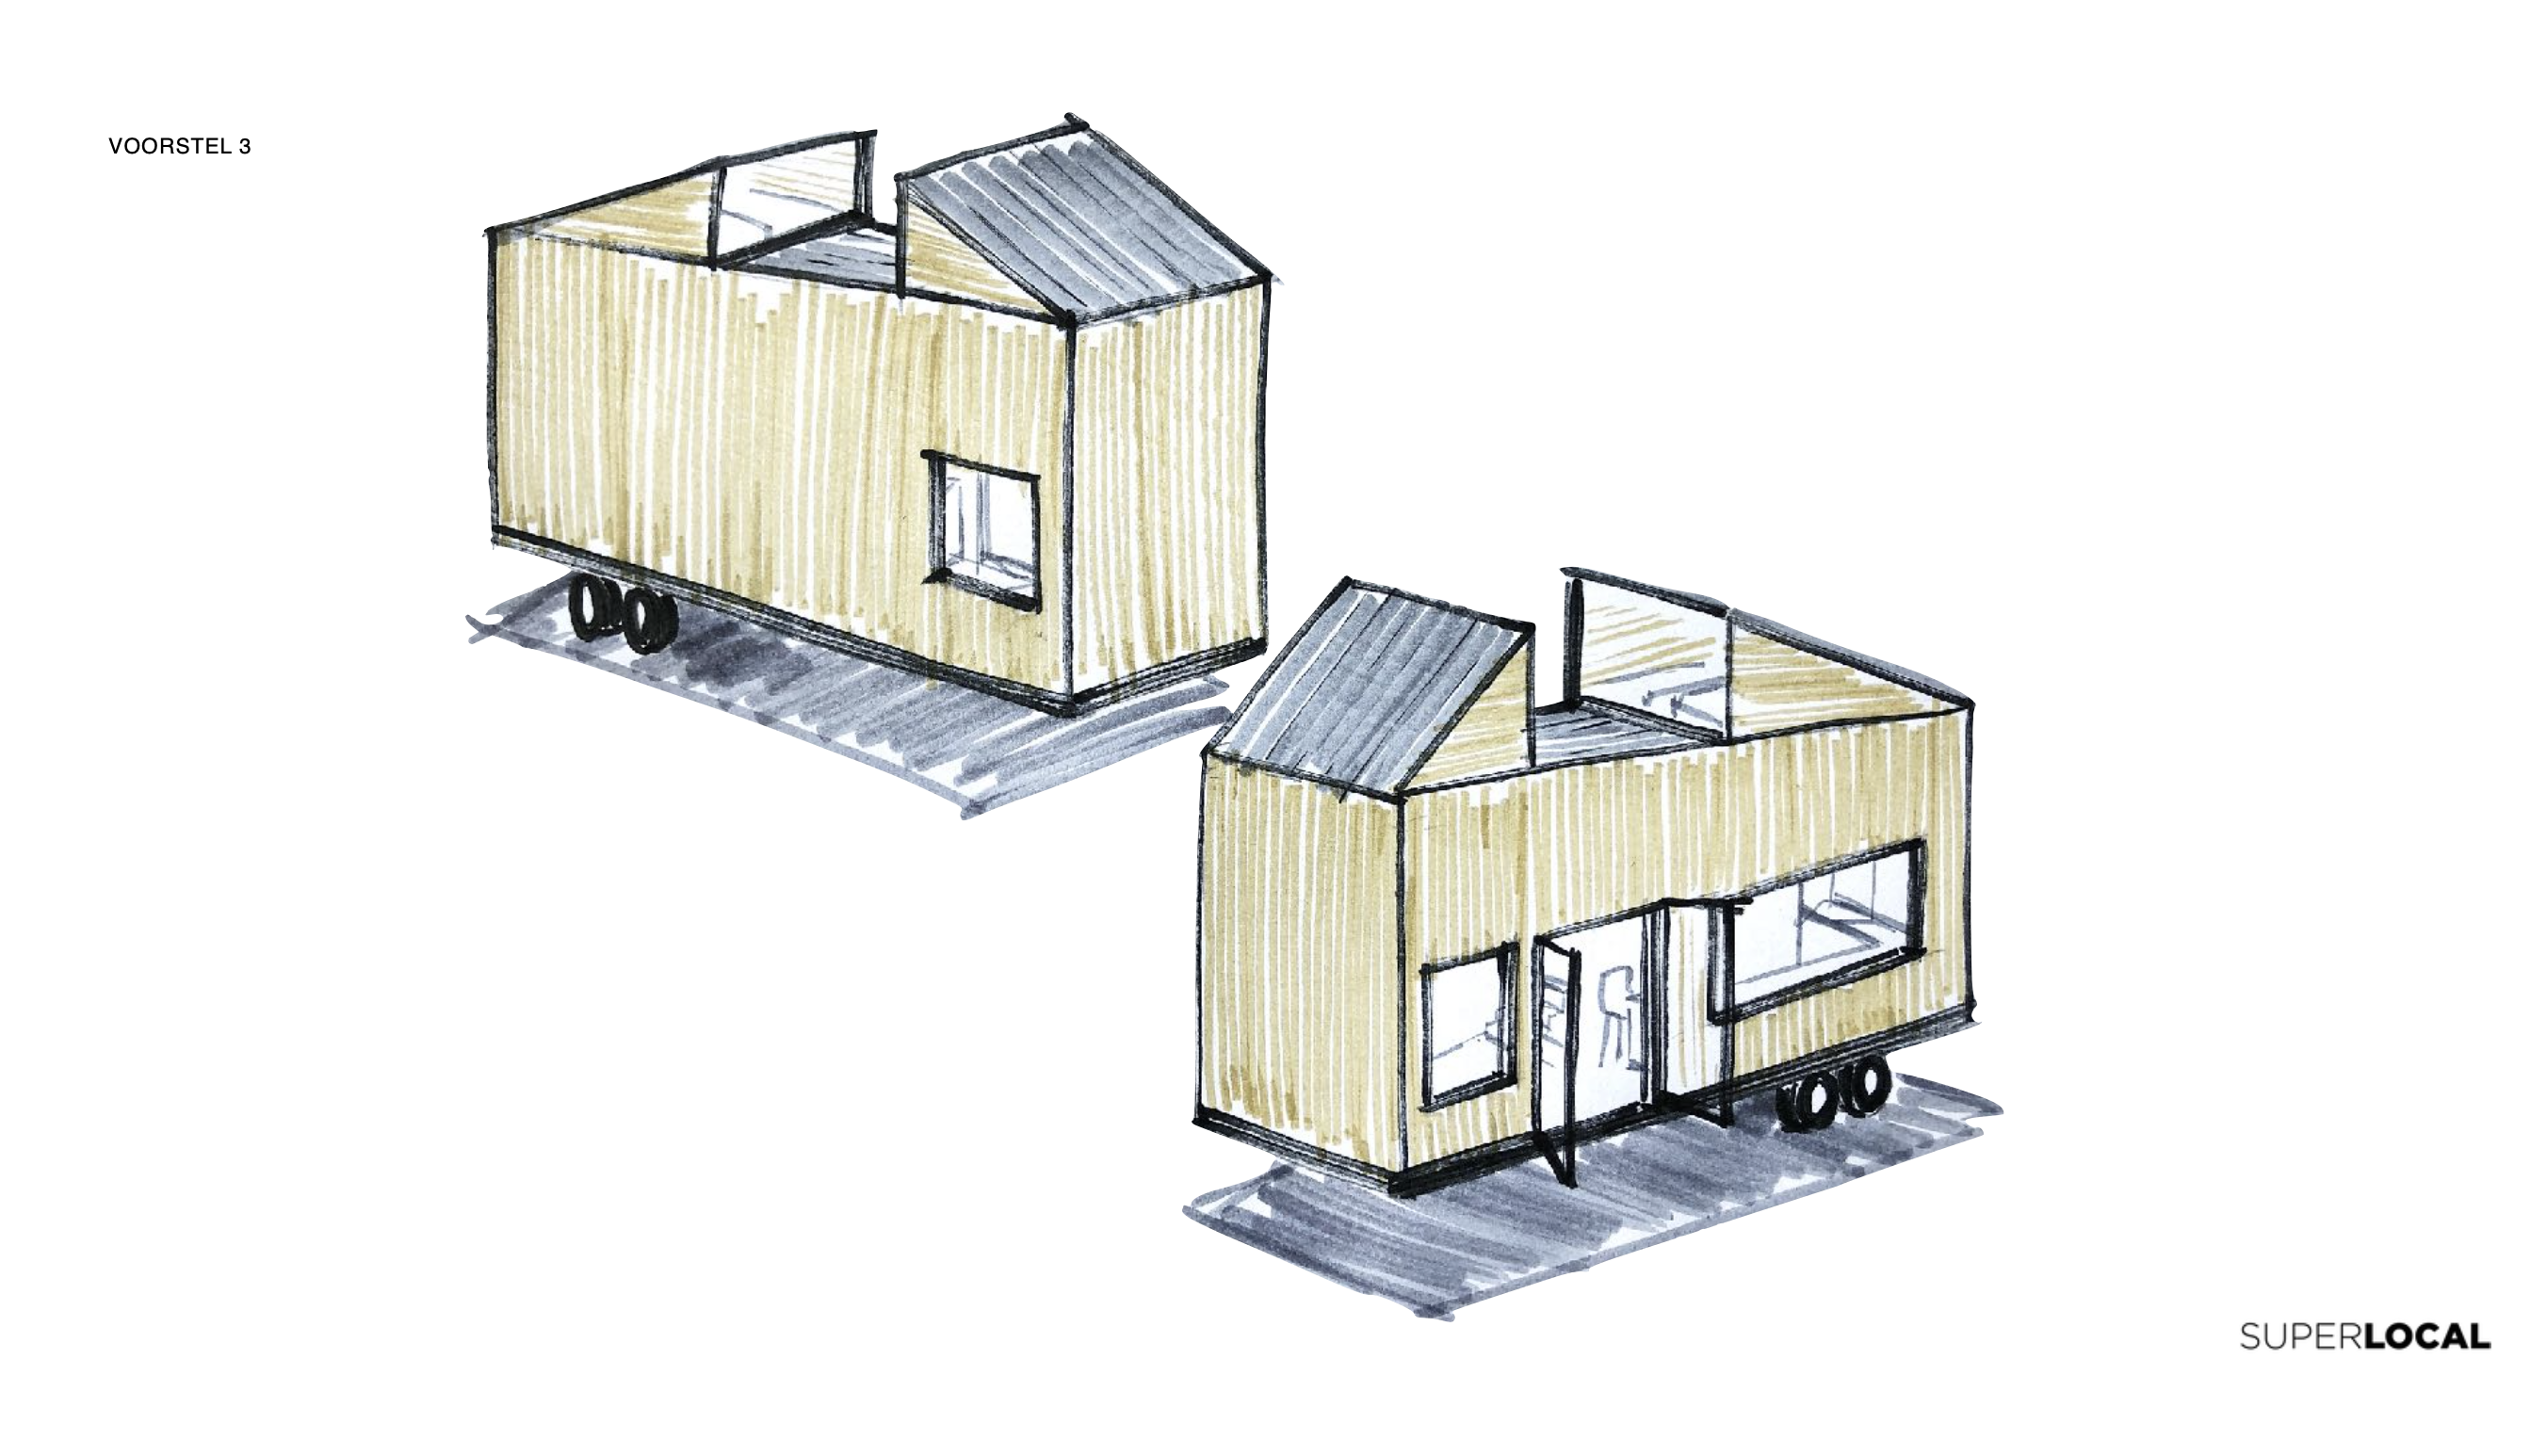 Tiny house design sketches by Super Local